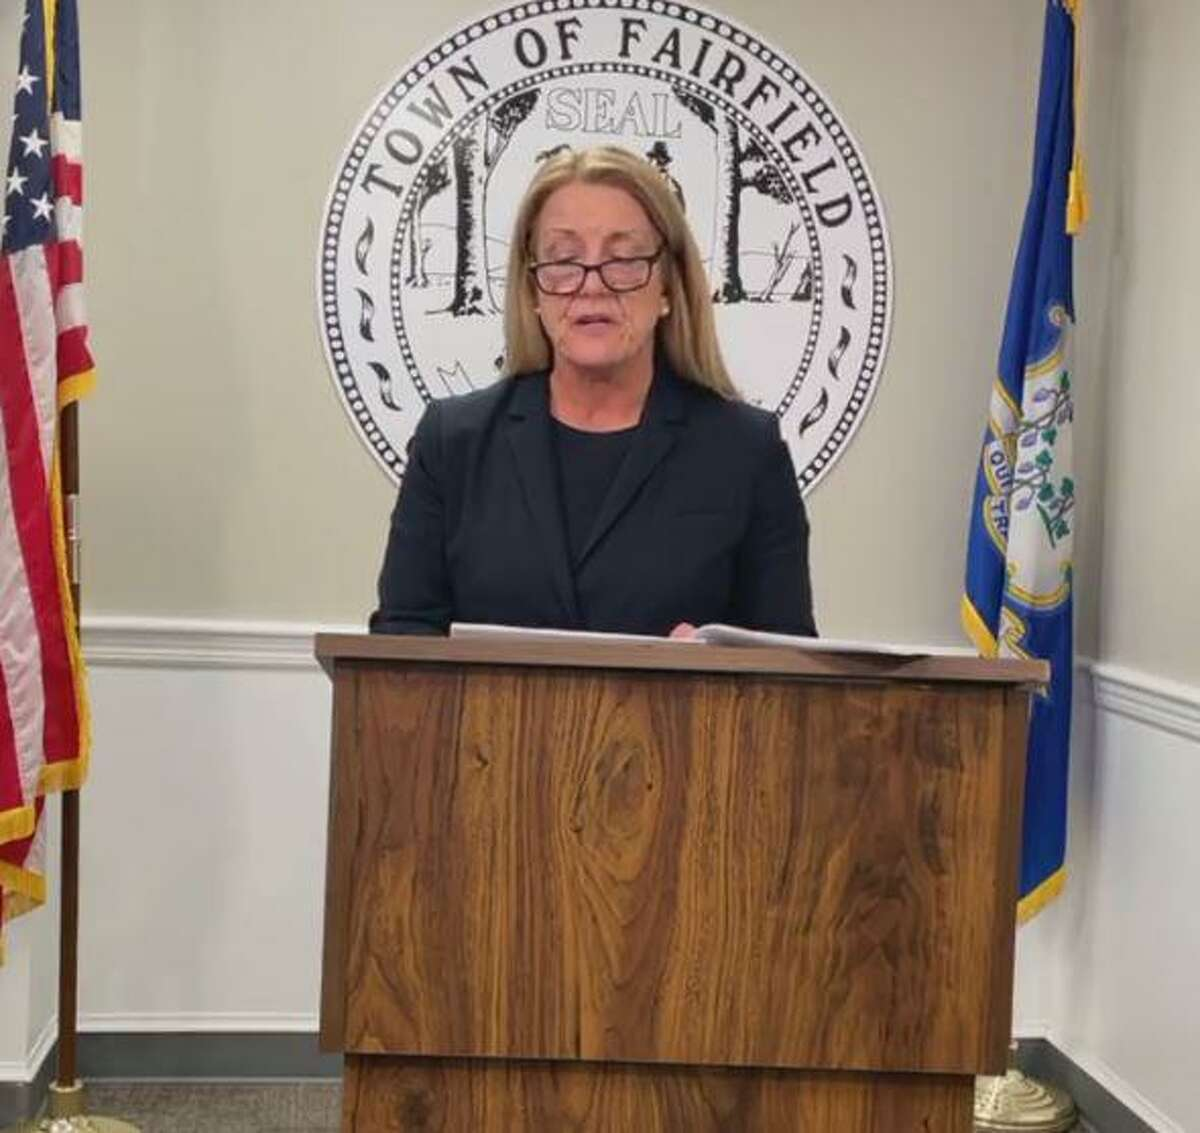 In a Monday speech, First Selectwoman Brenda Kupchick spoke to both the challenges and the successes Fairfield had last year.